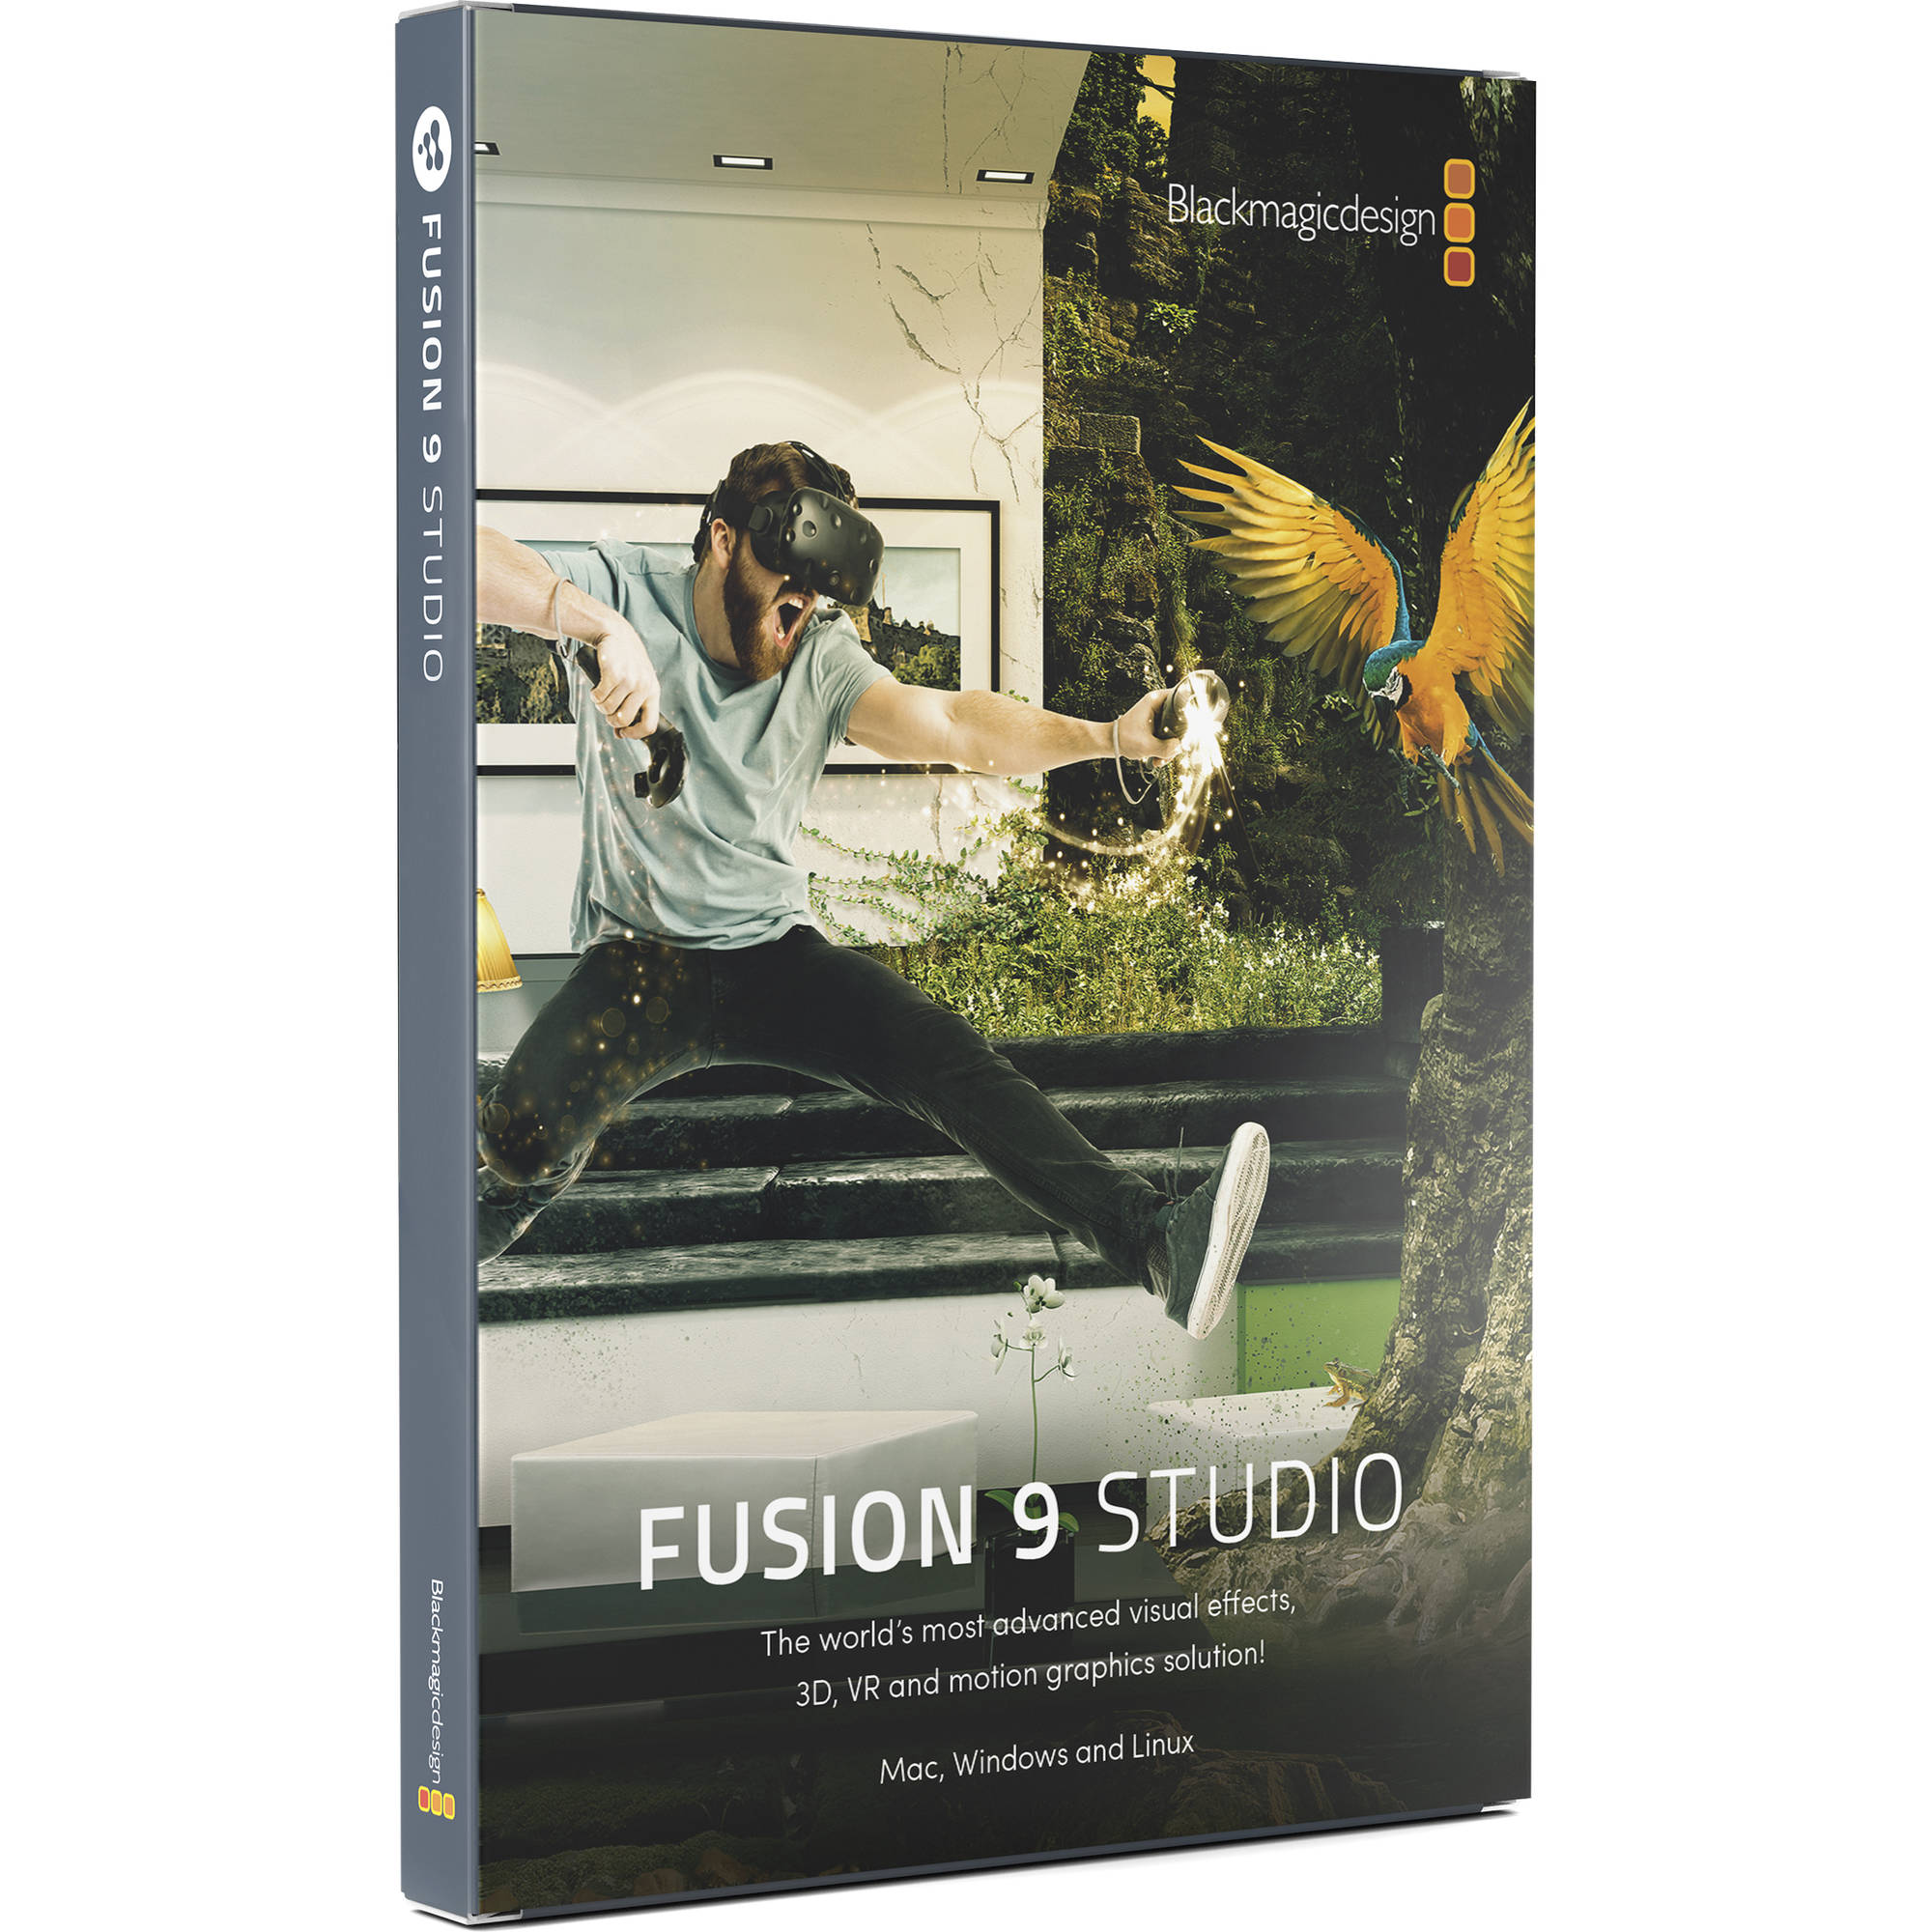 Blackmagic Design Fusion 9 Studio for Mac and Windows (BM-DV/STUFUS)